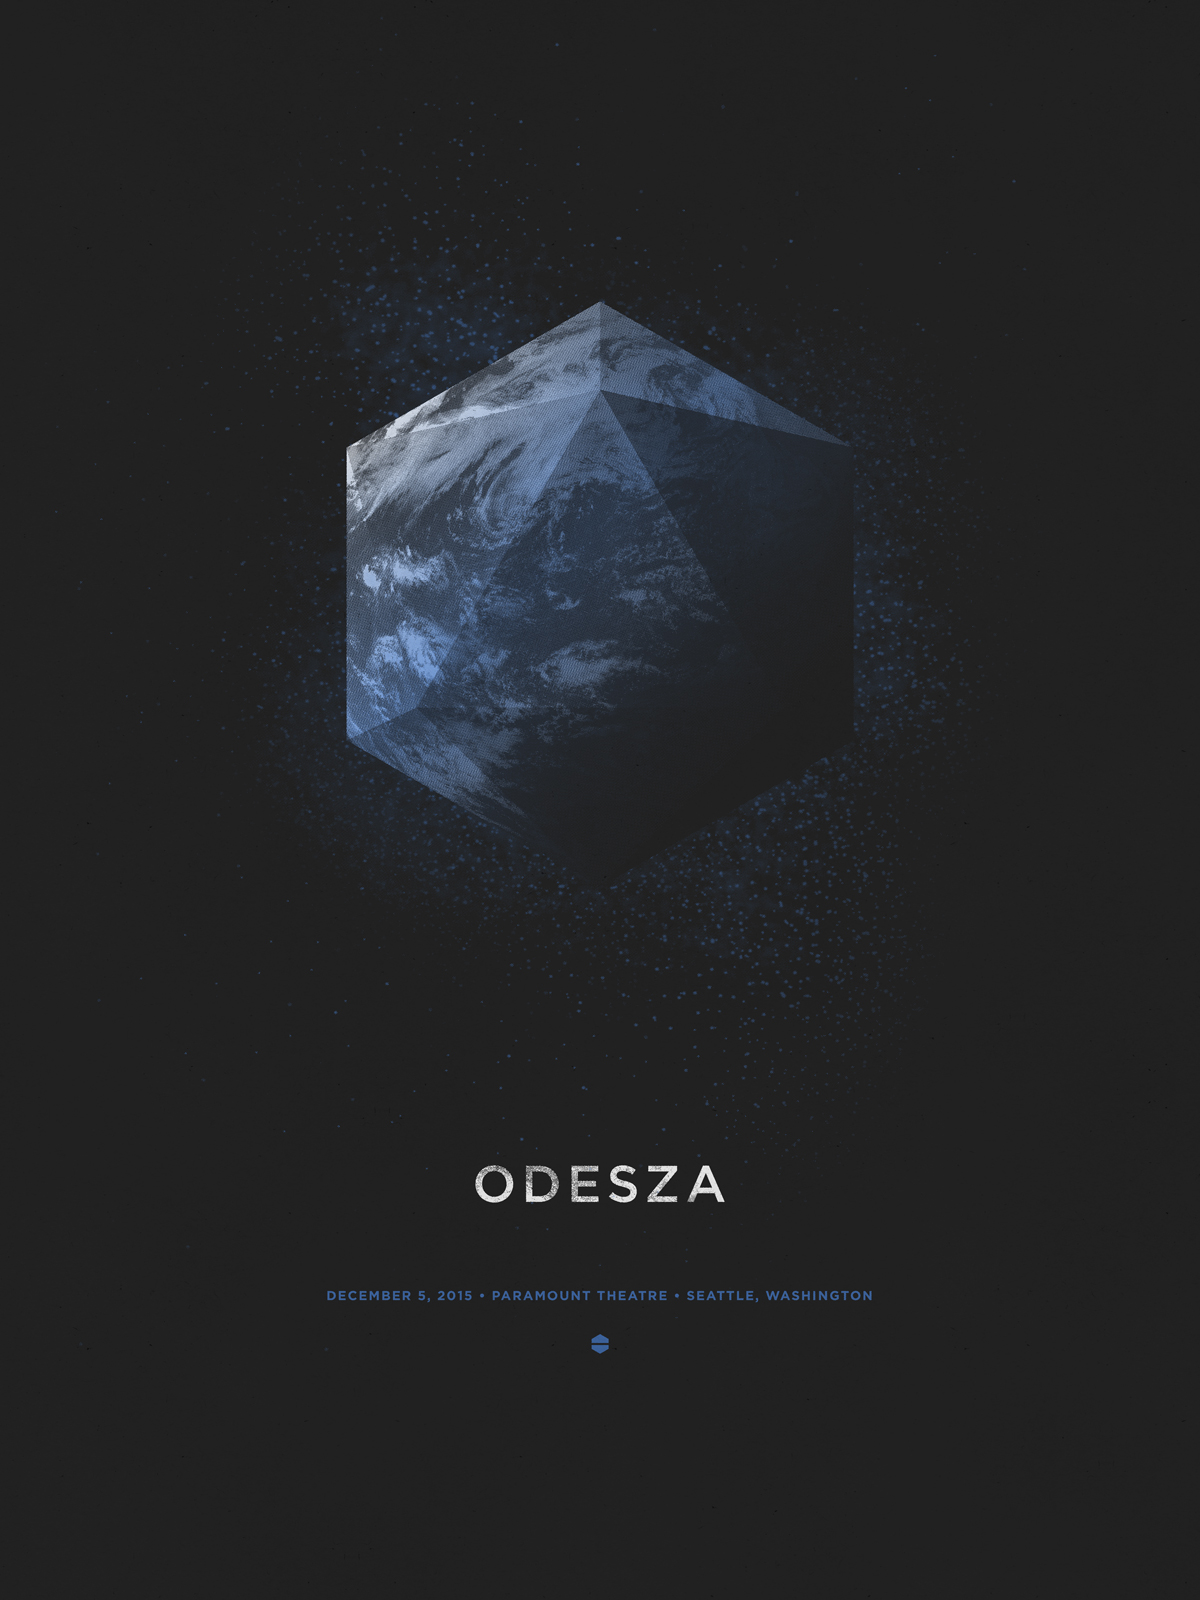 Odesza Poster by DKNG